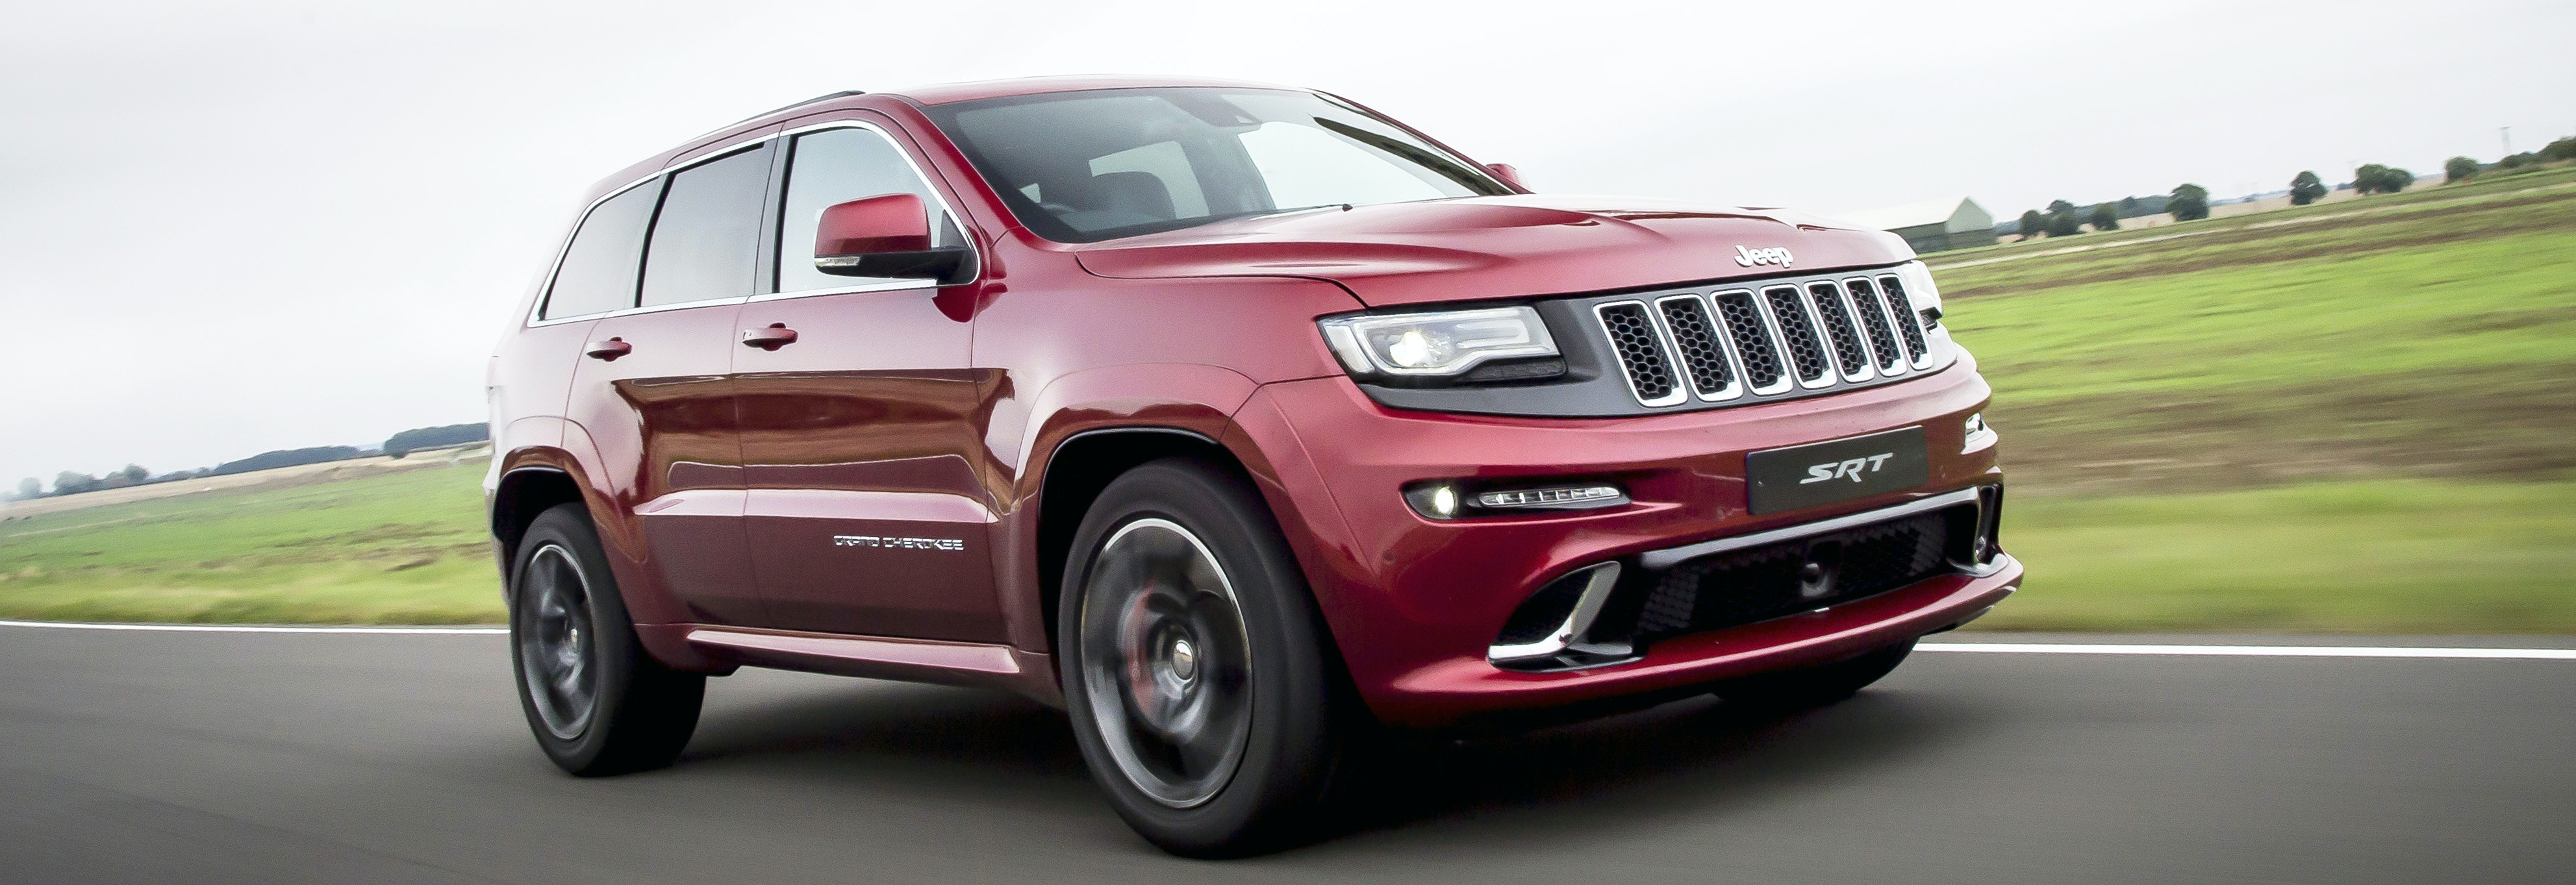 2018 jeep gran cherokee red driving front